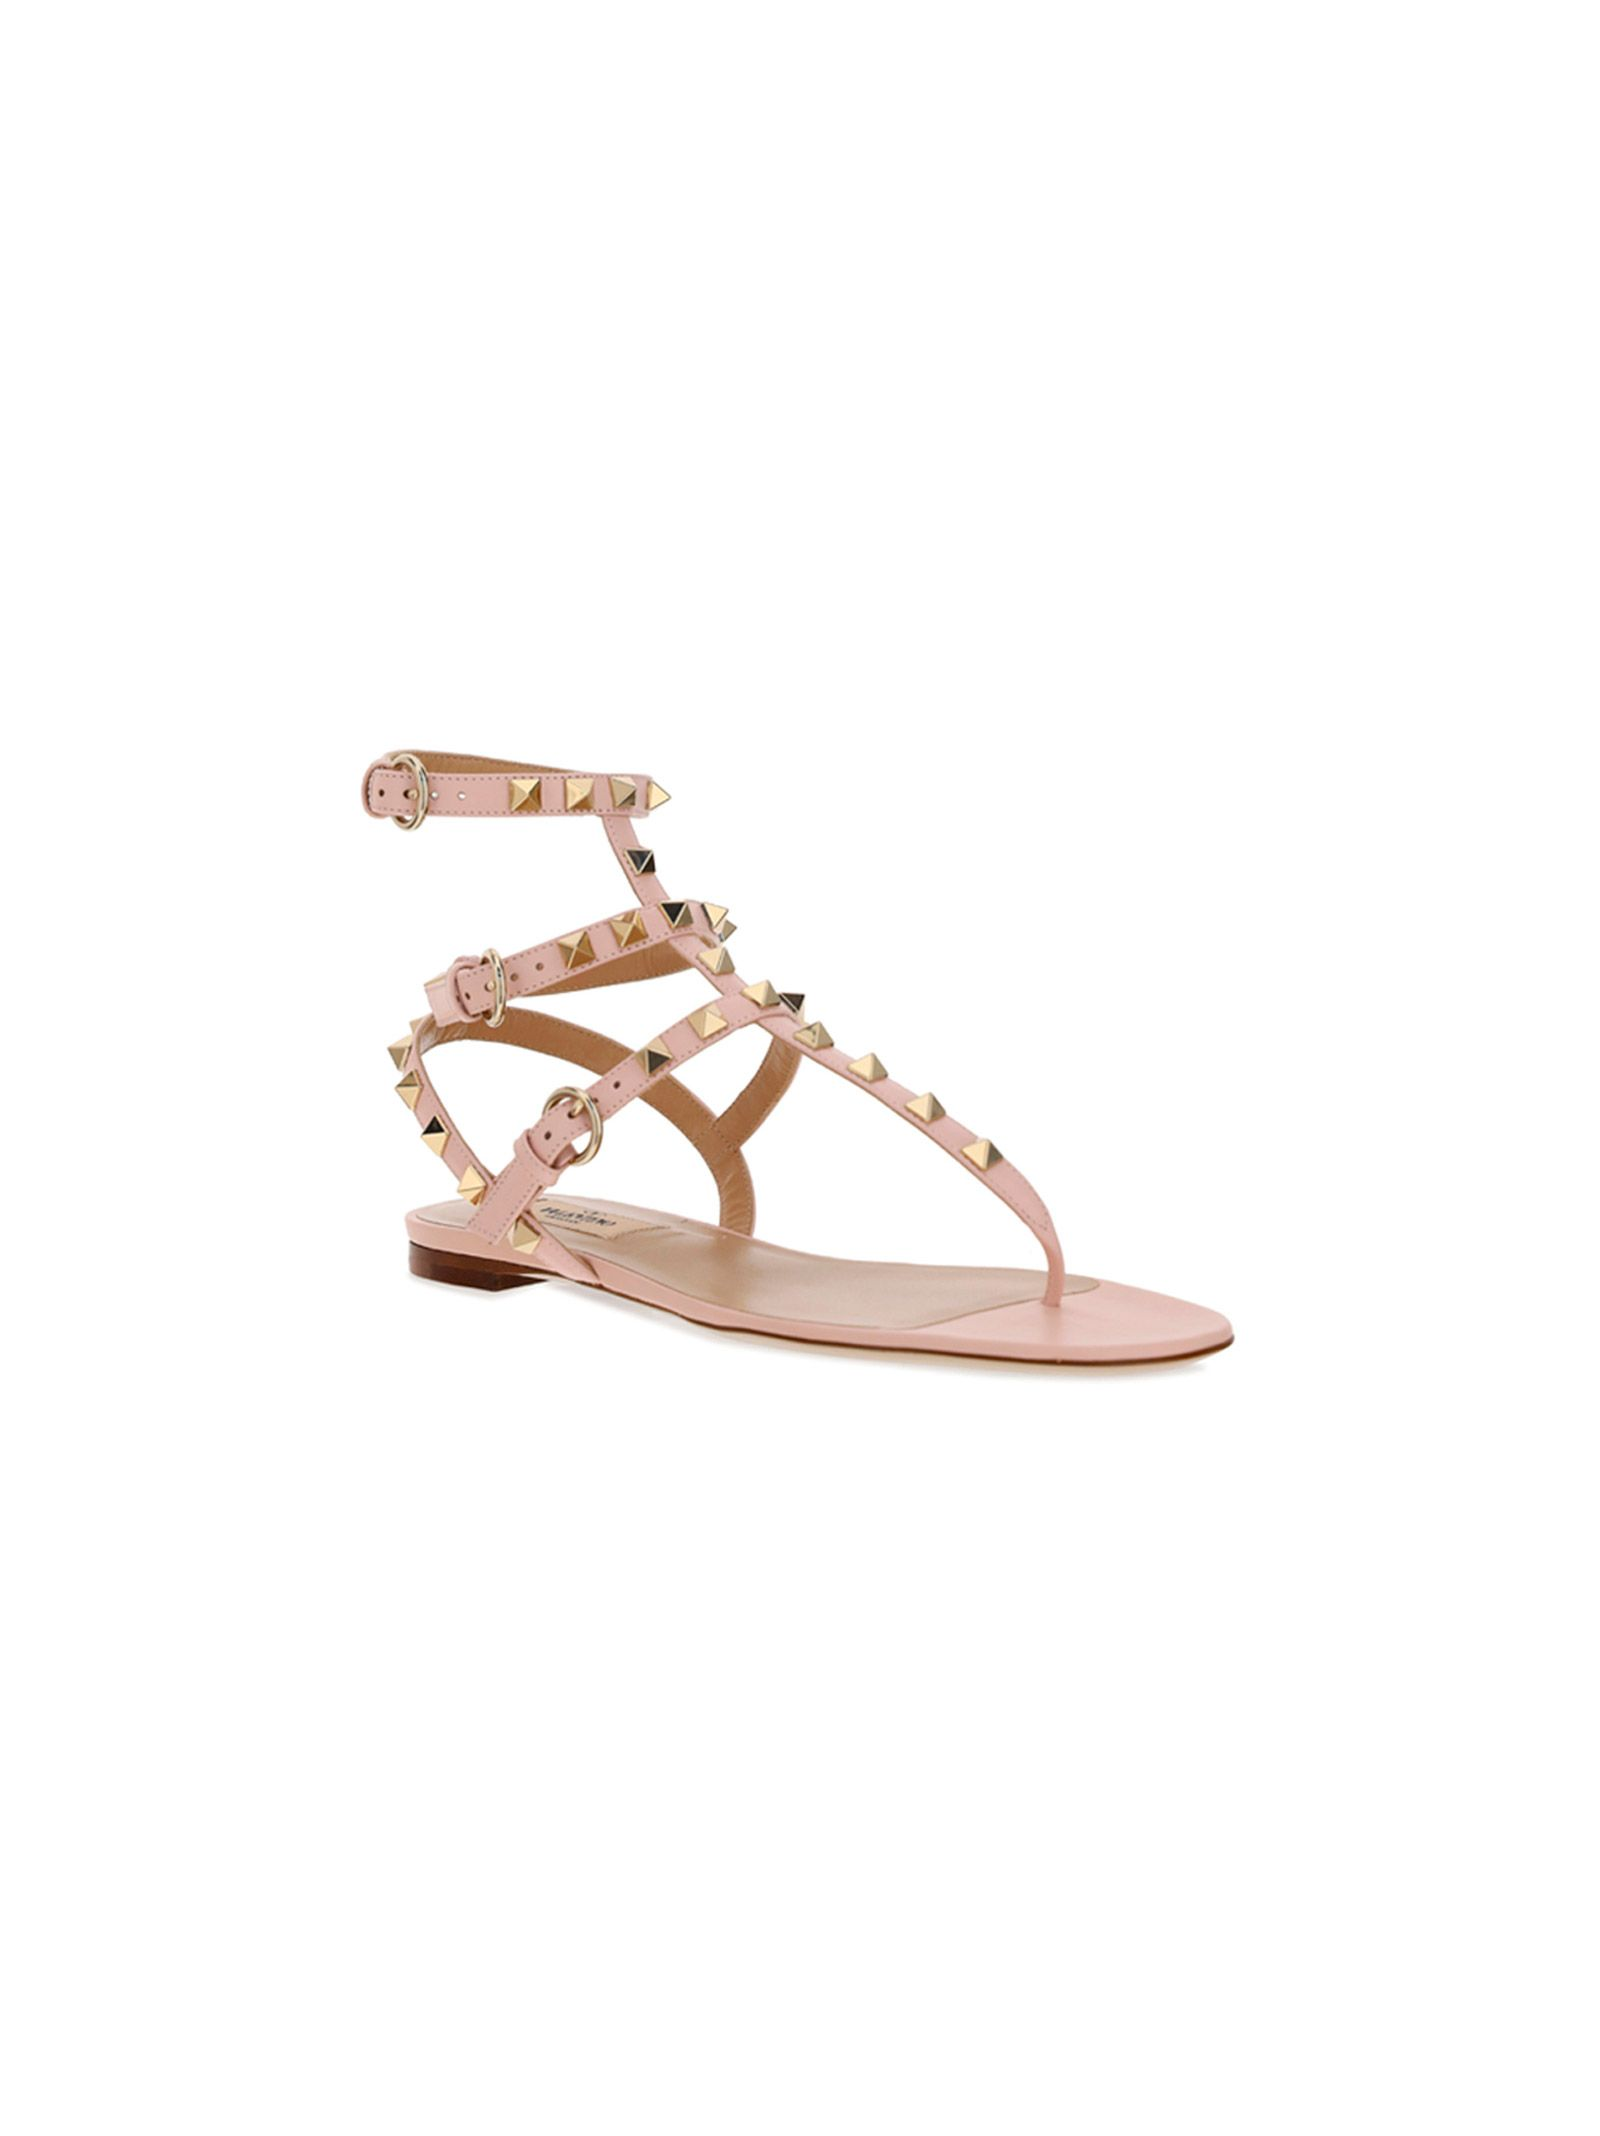 VALENTINO Leathers VALENTINO GARAVANI WOMEN'S PINK OTHER MATERIALS SANDALS